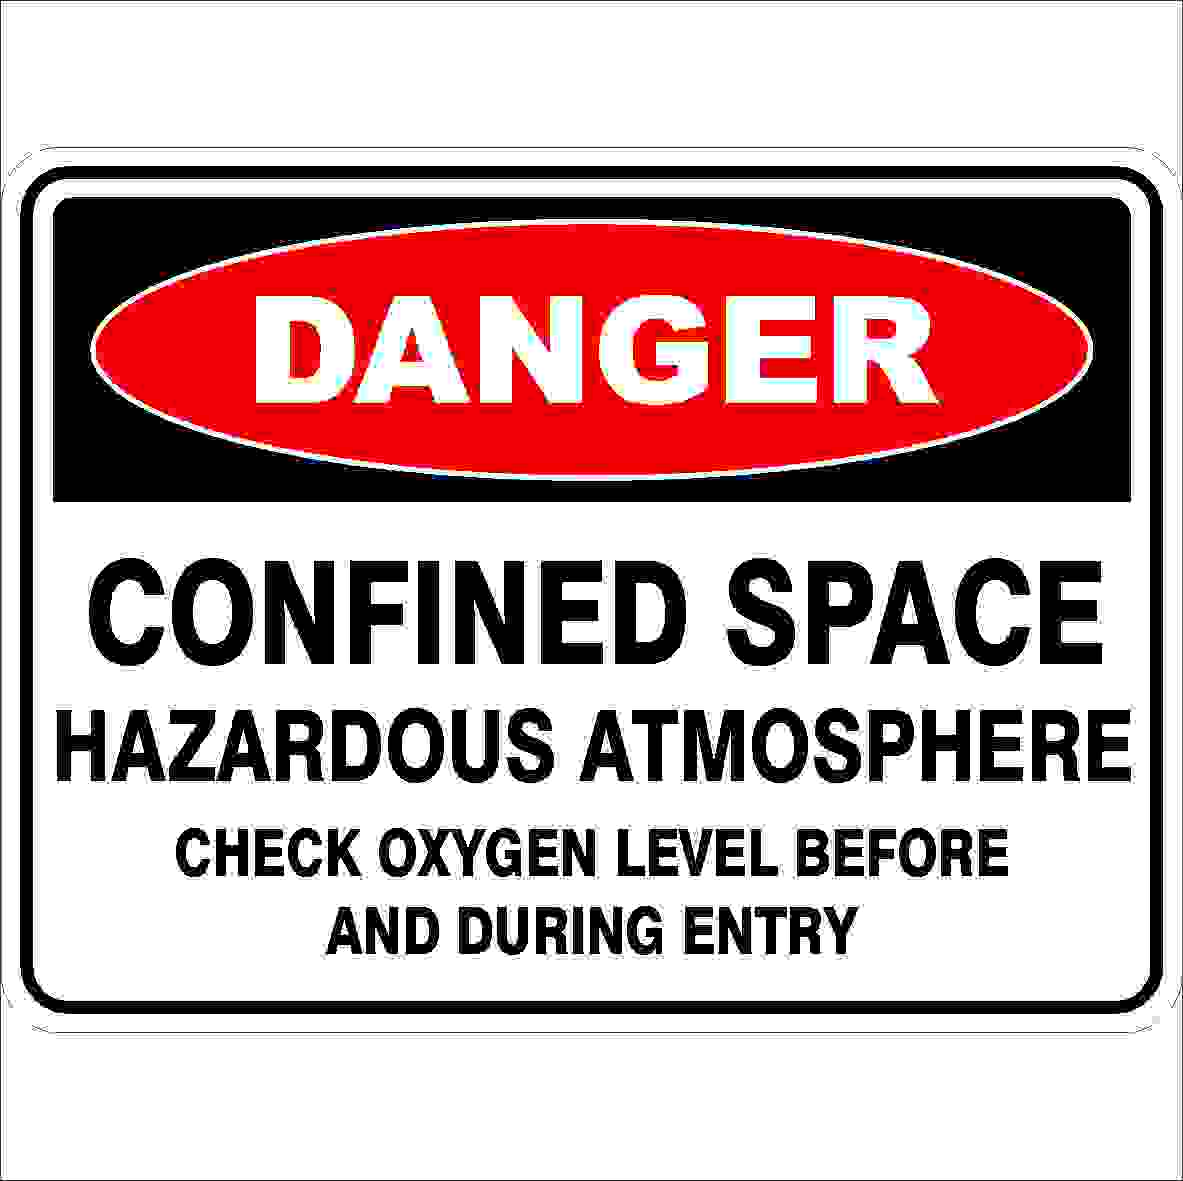 Danger Signs CONFINED SPACE HAZARDOUS ATMOSPHERE CHECK OXYGEN LEVEL BEFORE AN